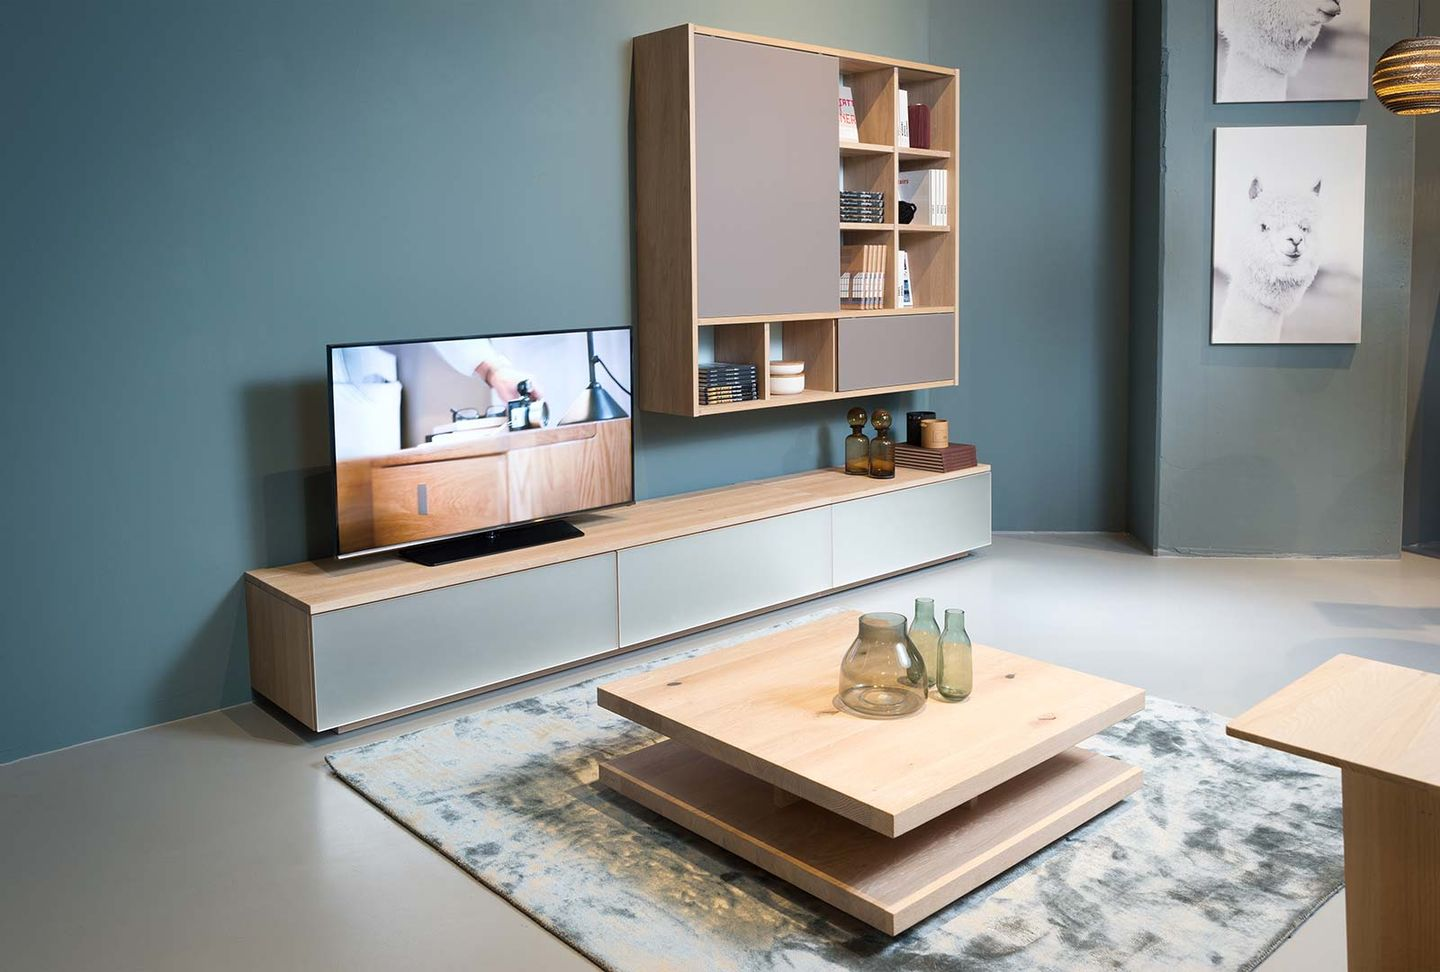 cubus wall unit TEAM 7 Hamburg City